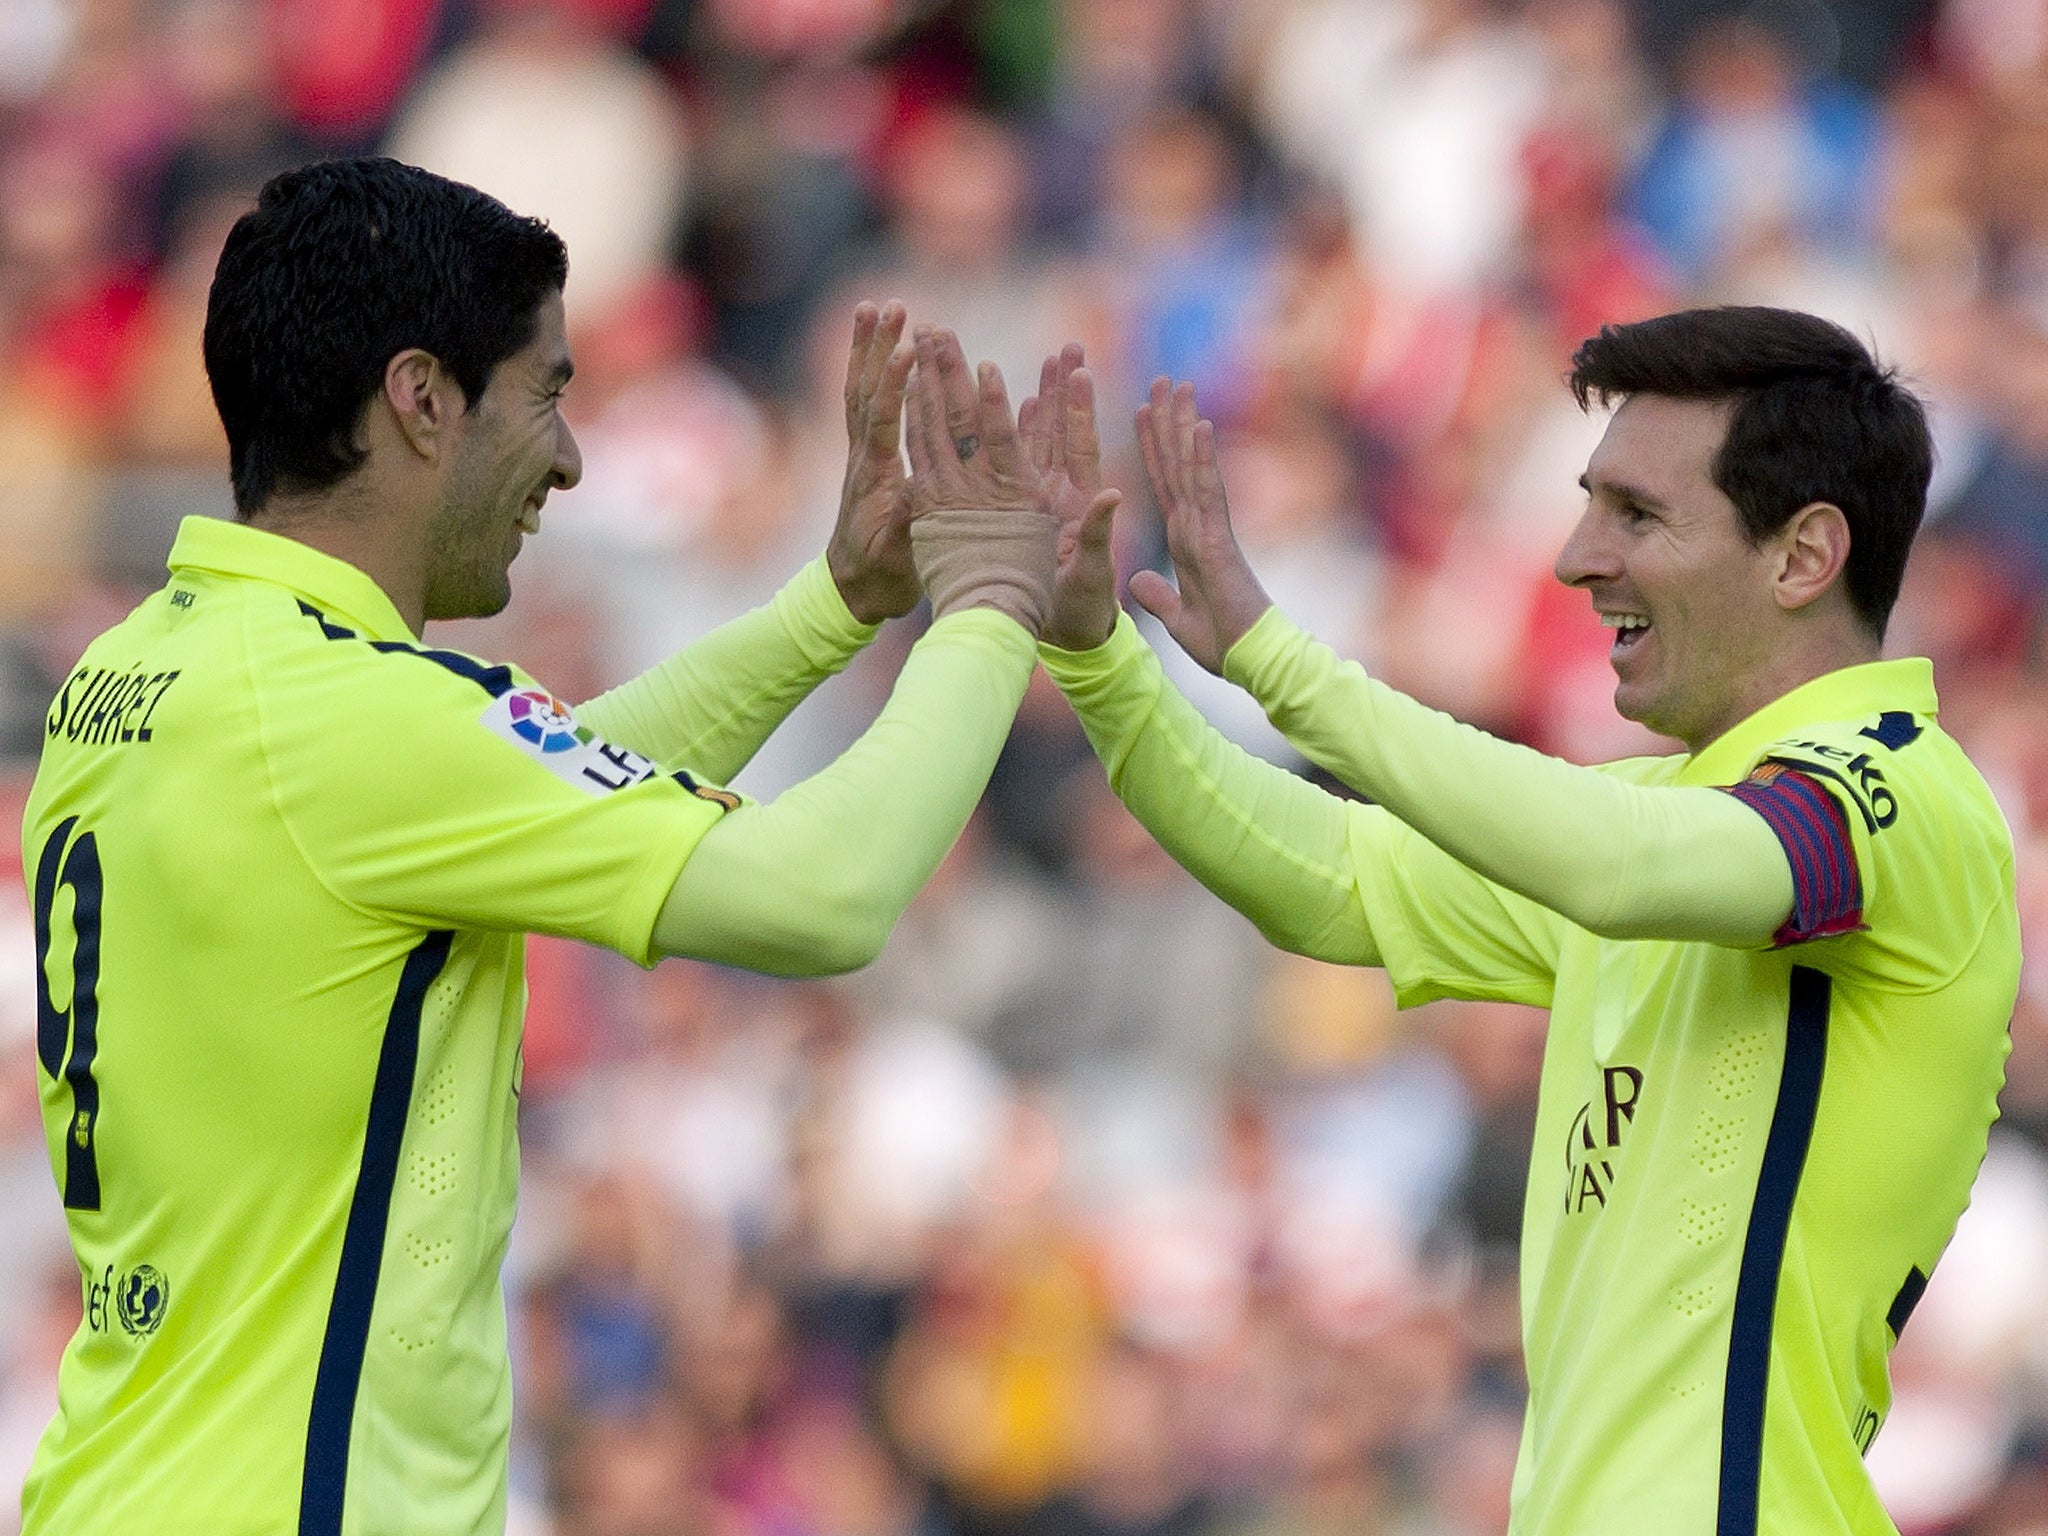 Granada Vs Barcelona Match Report Luis Suarez Impresses With Goal And Assist As Barca Keep Pressure On Real Madrid The Independent The Independent